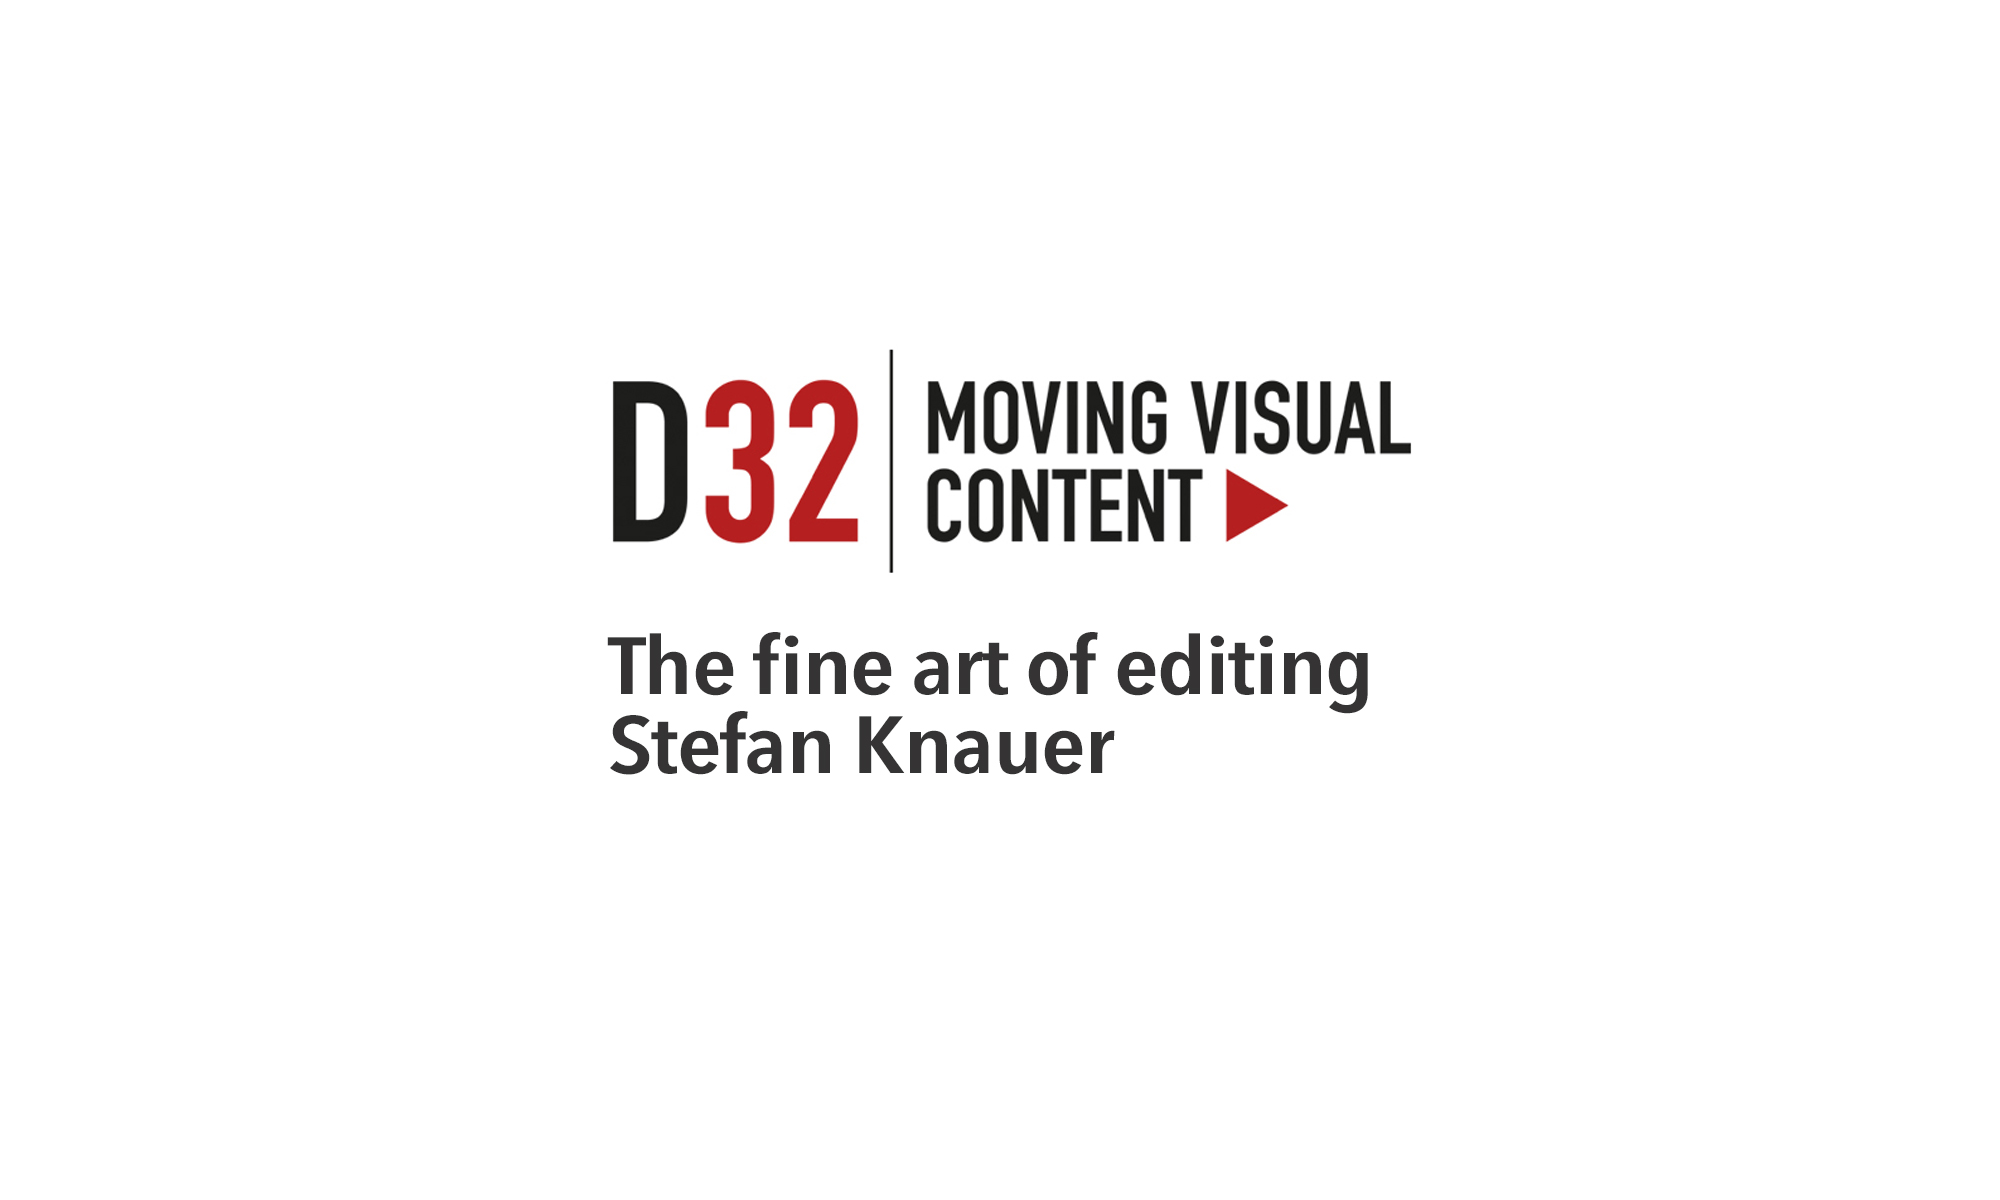 D32 moving visual content